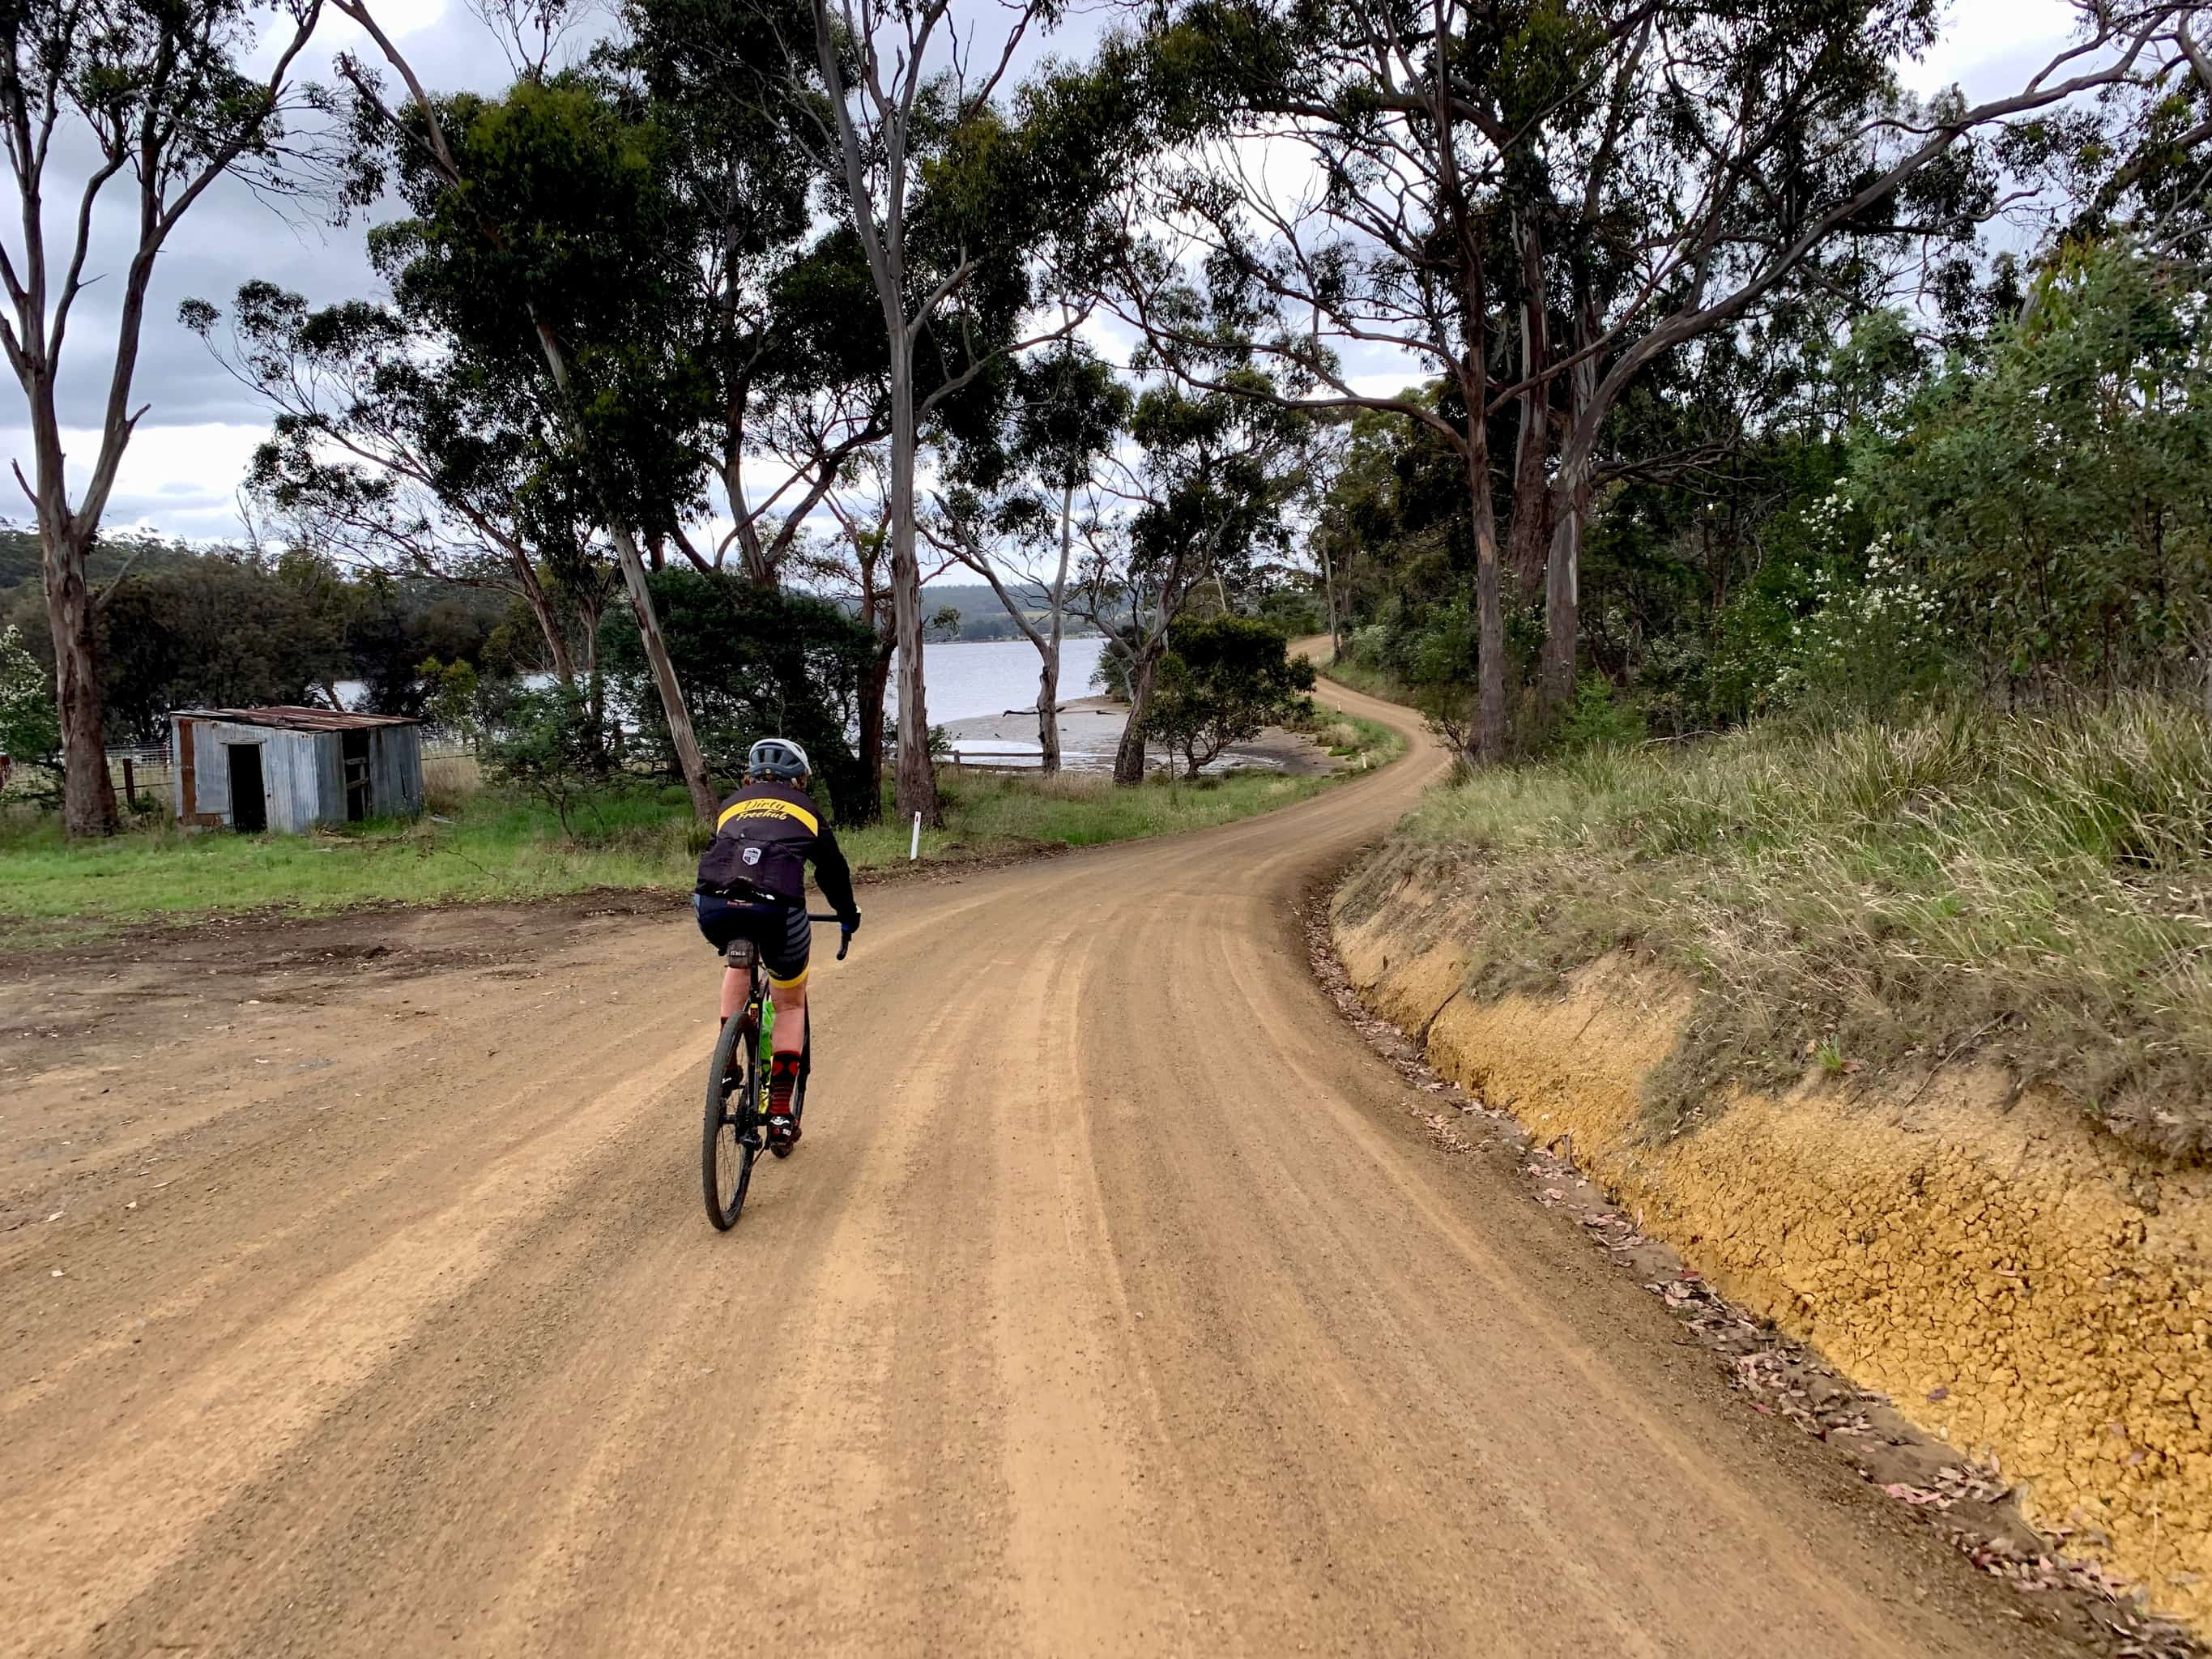 Bike rider on gravel road with Barnes Bay of Bruny Island in the distance.